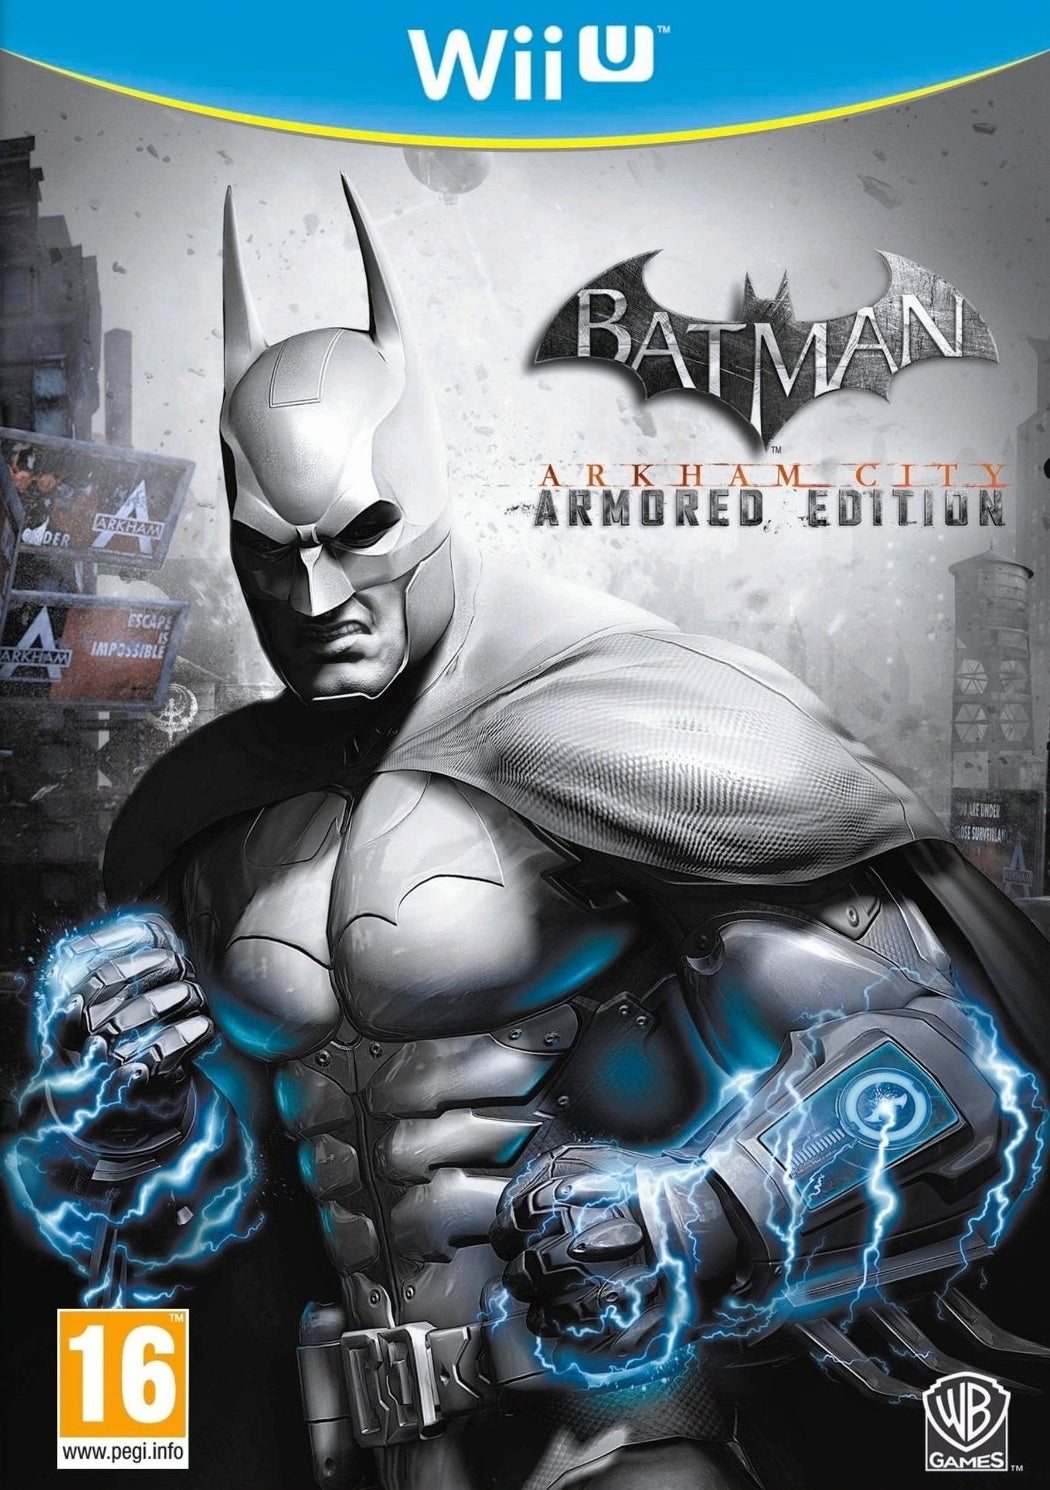 Batman: Arkham City Armored Edition - Wii U (Pre-owned)